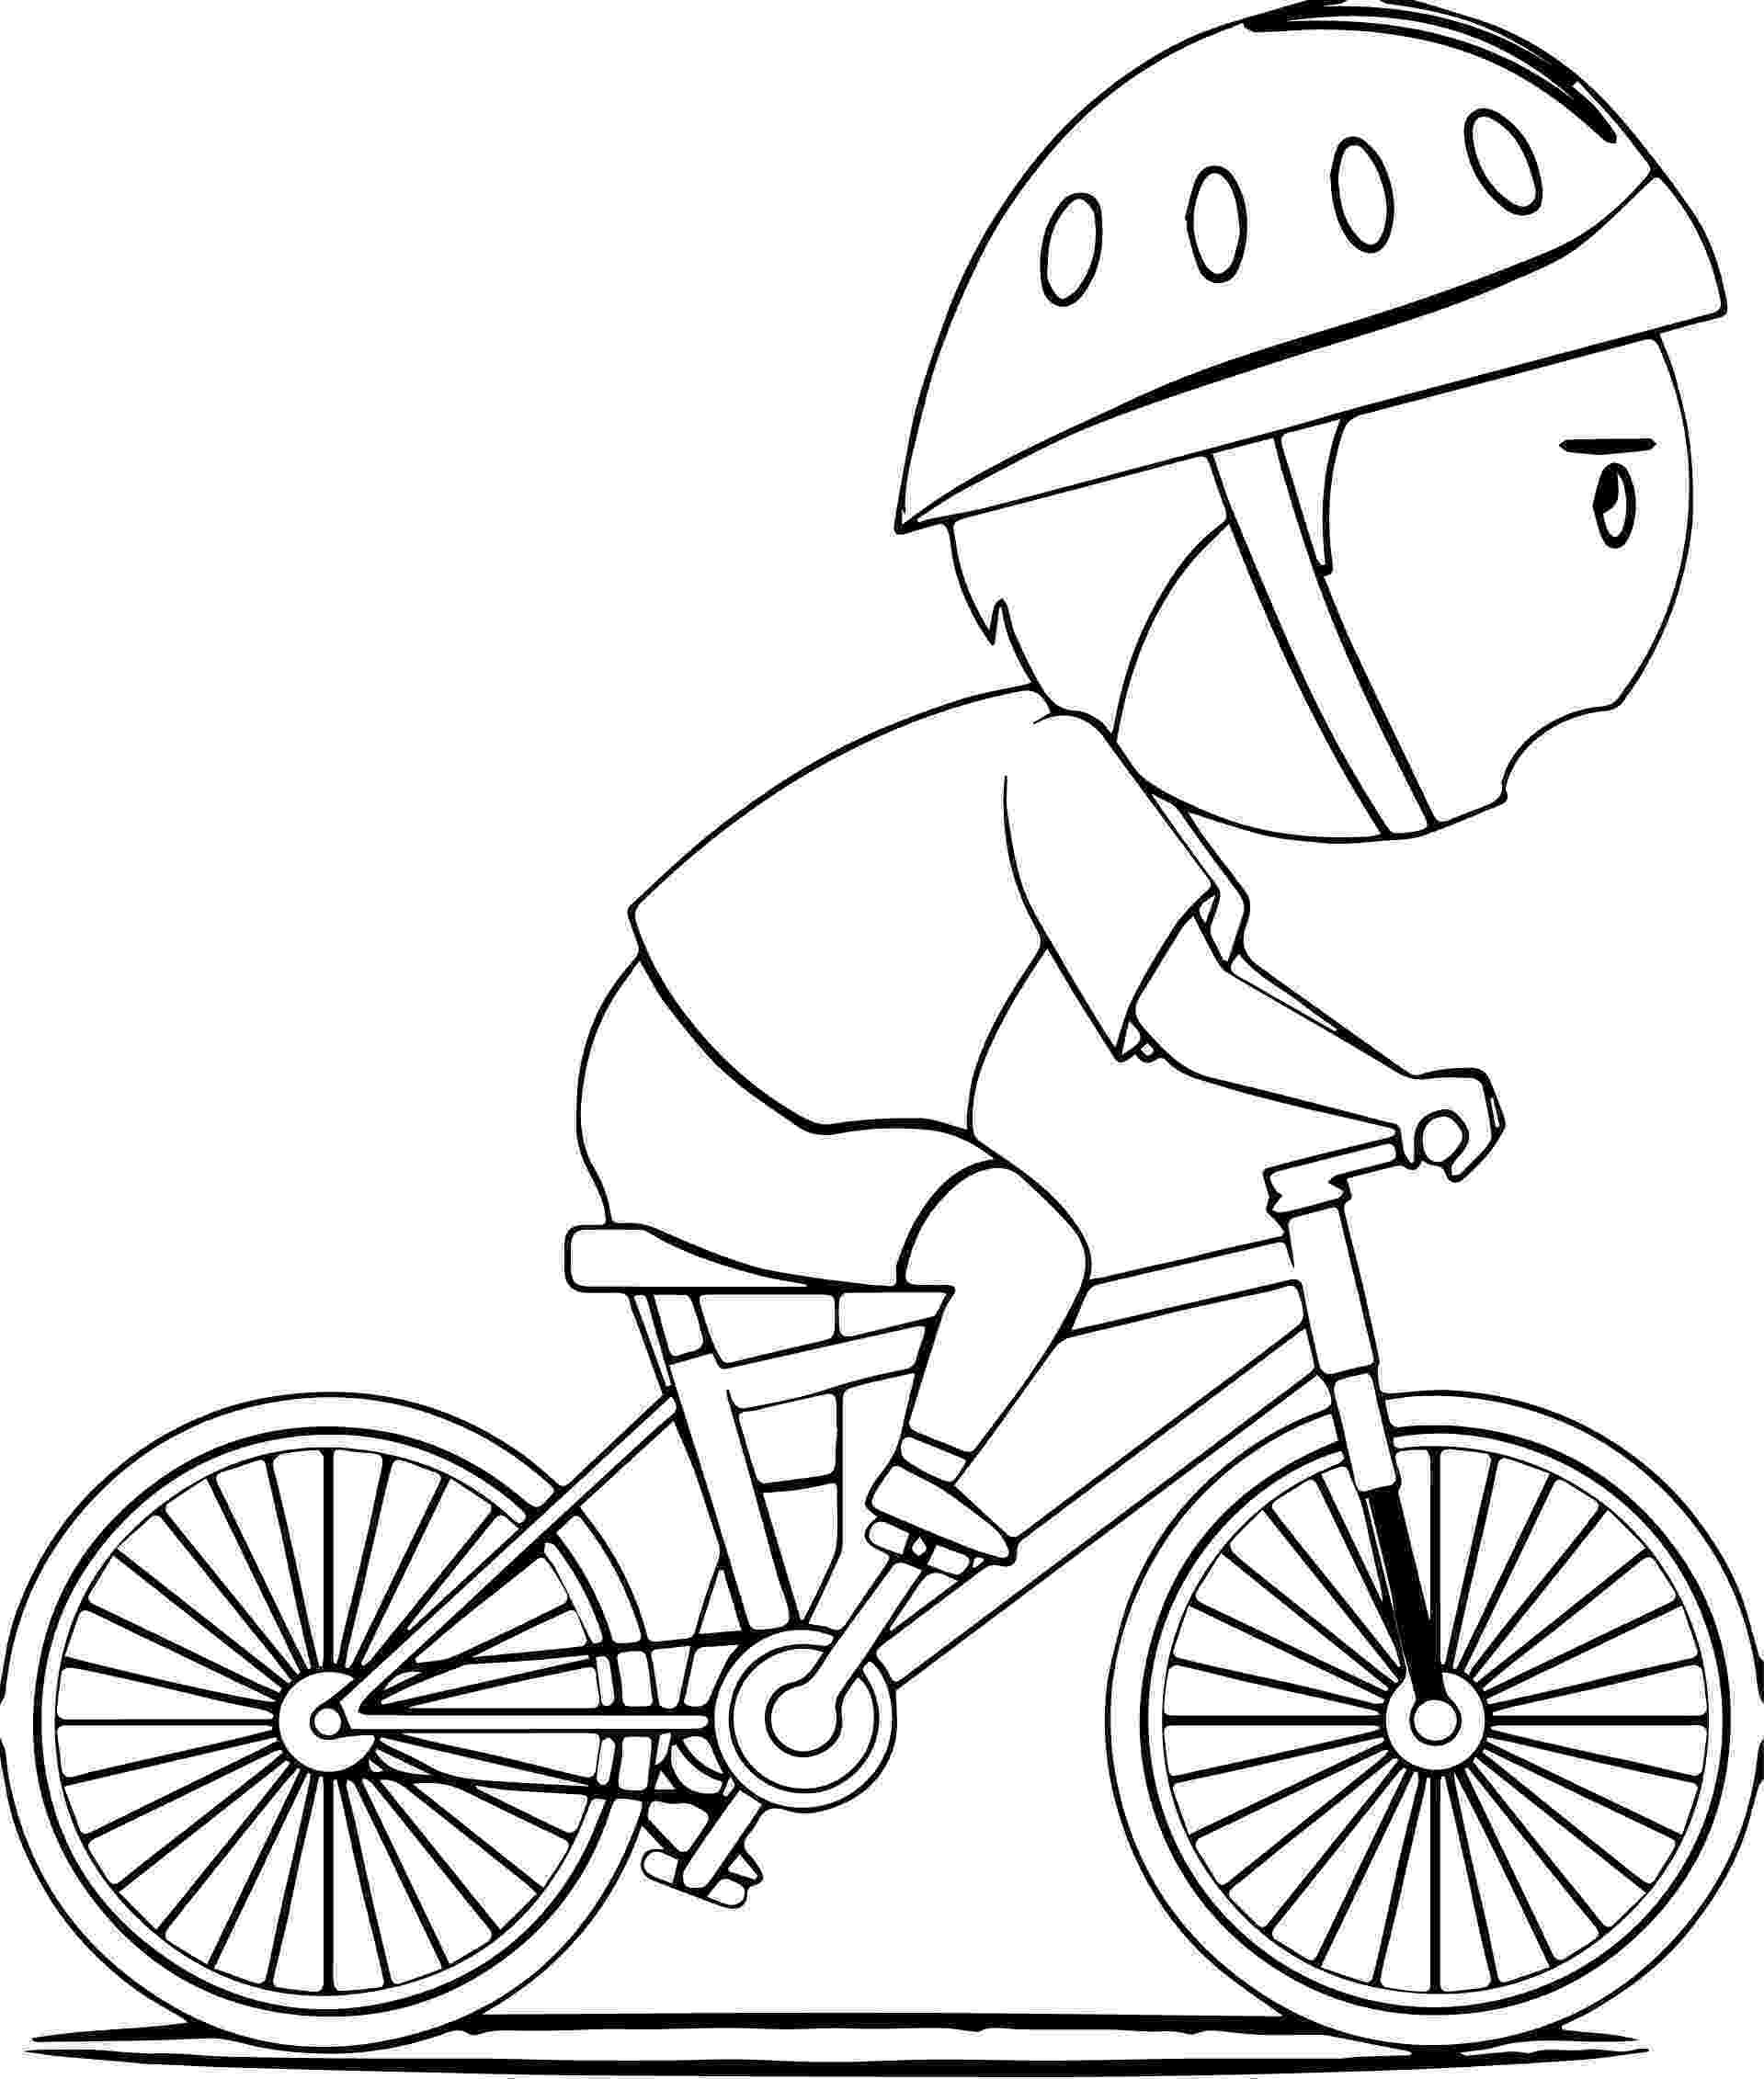 bmx bike coloring pages 7 9 years colouring pages per age kiddicolour pages bmx bike coloring